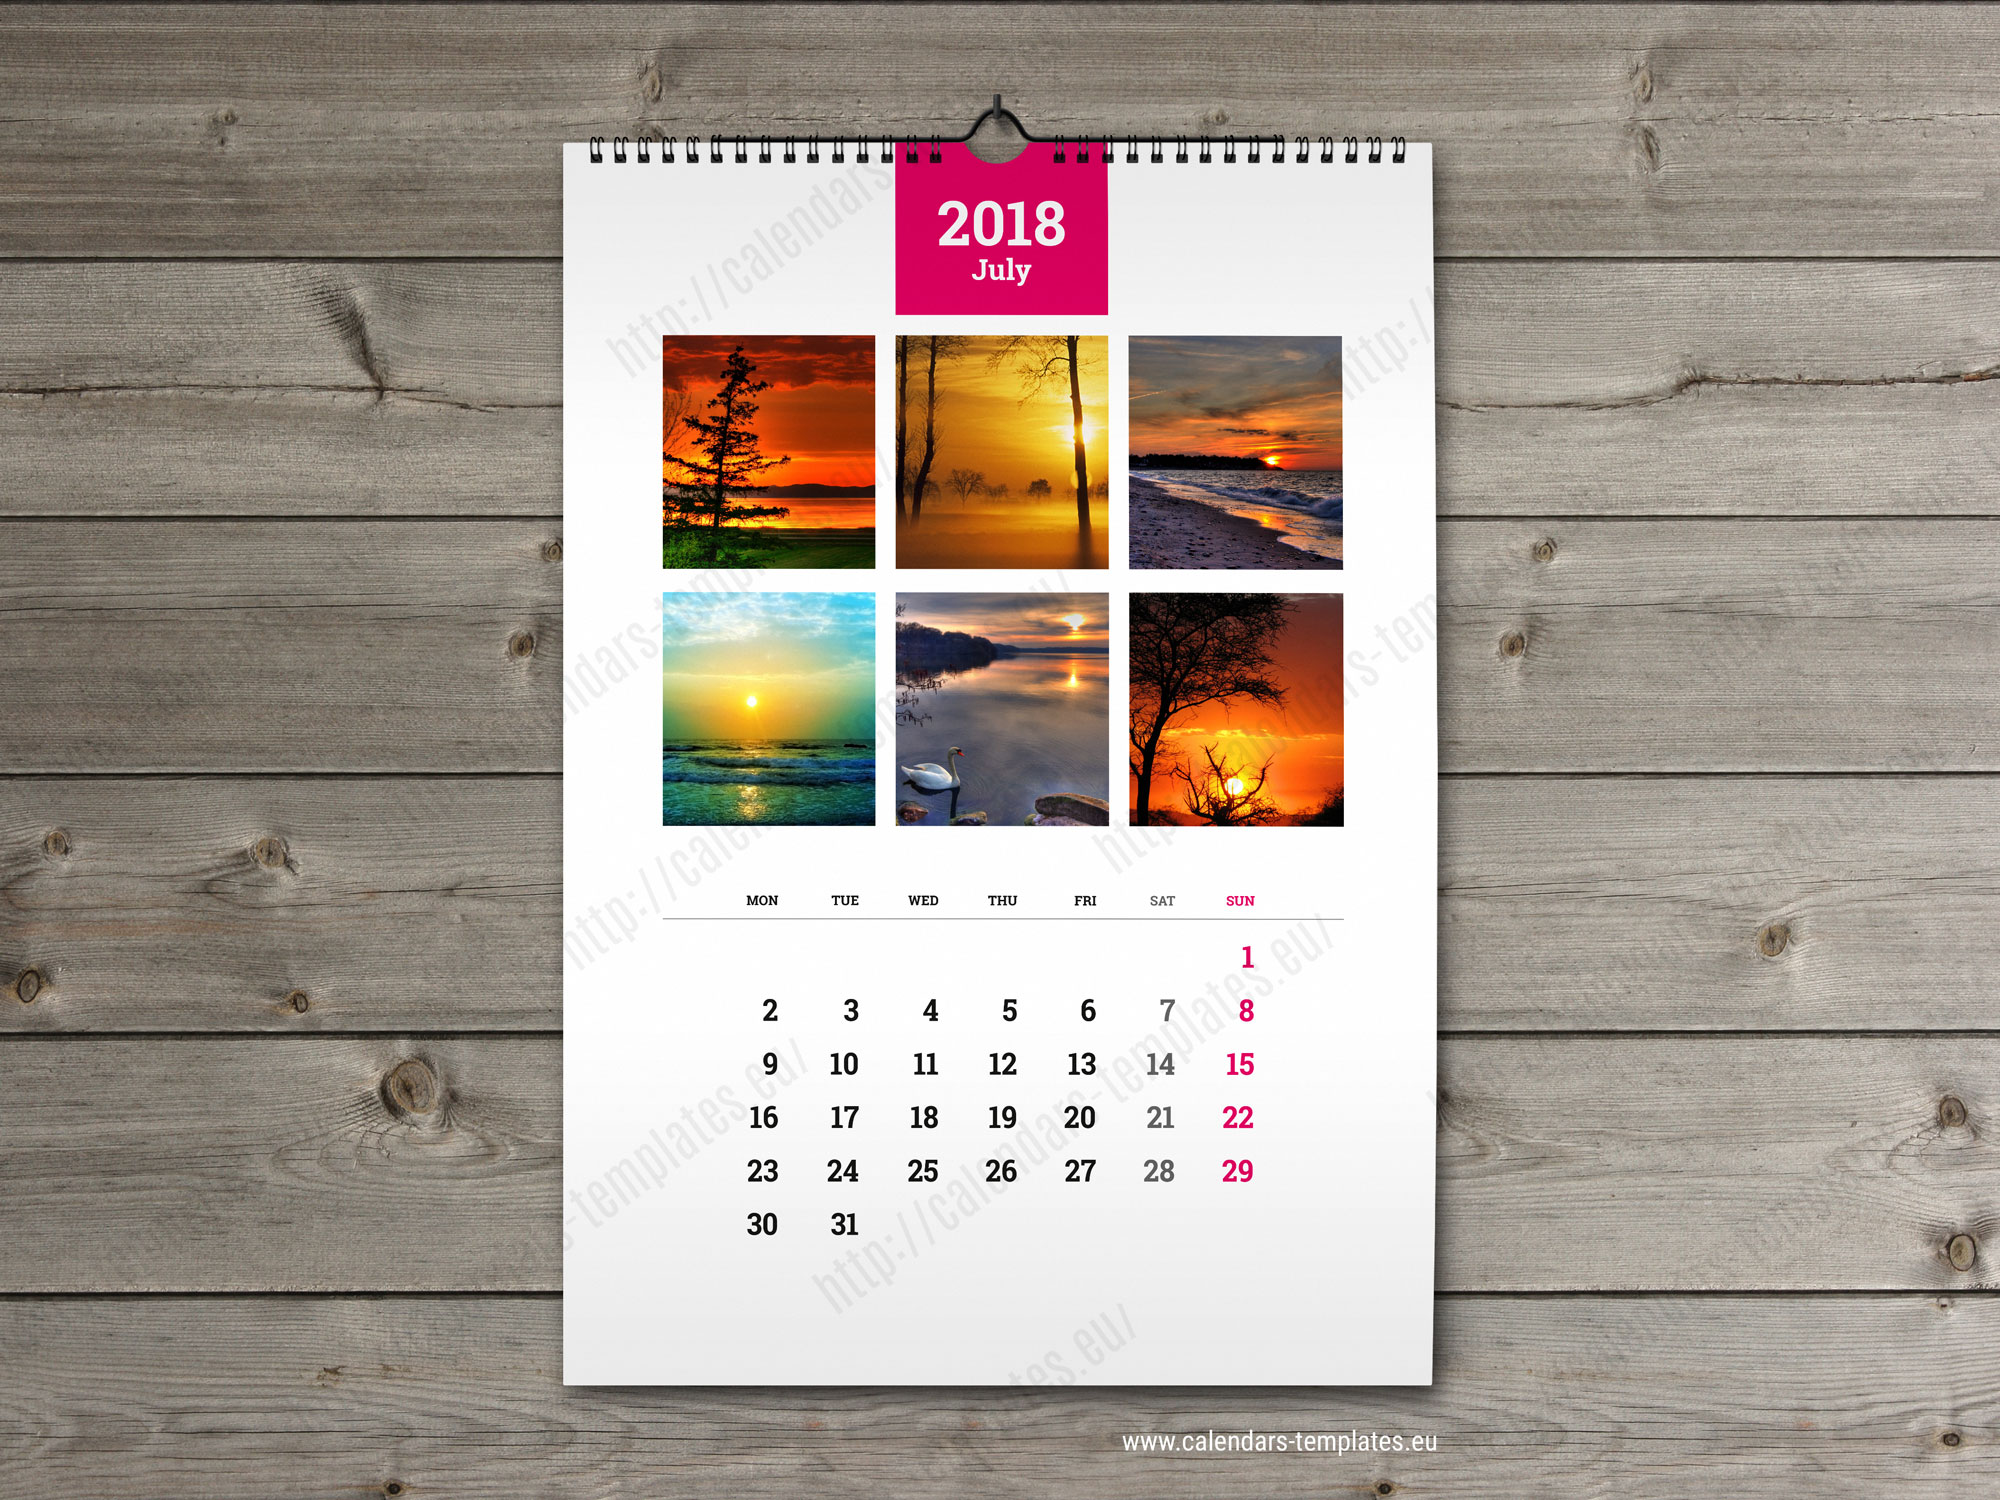 Calendar Design With Photos : Wall calendar a printable photo yearly monthly